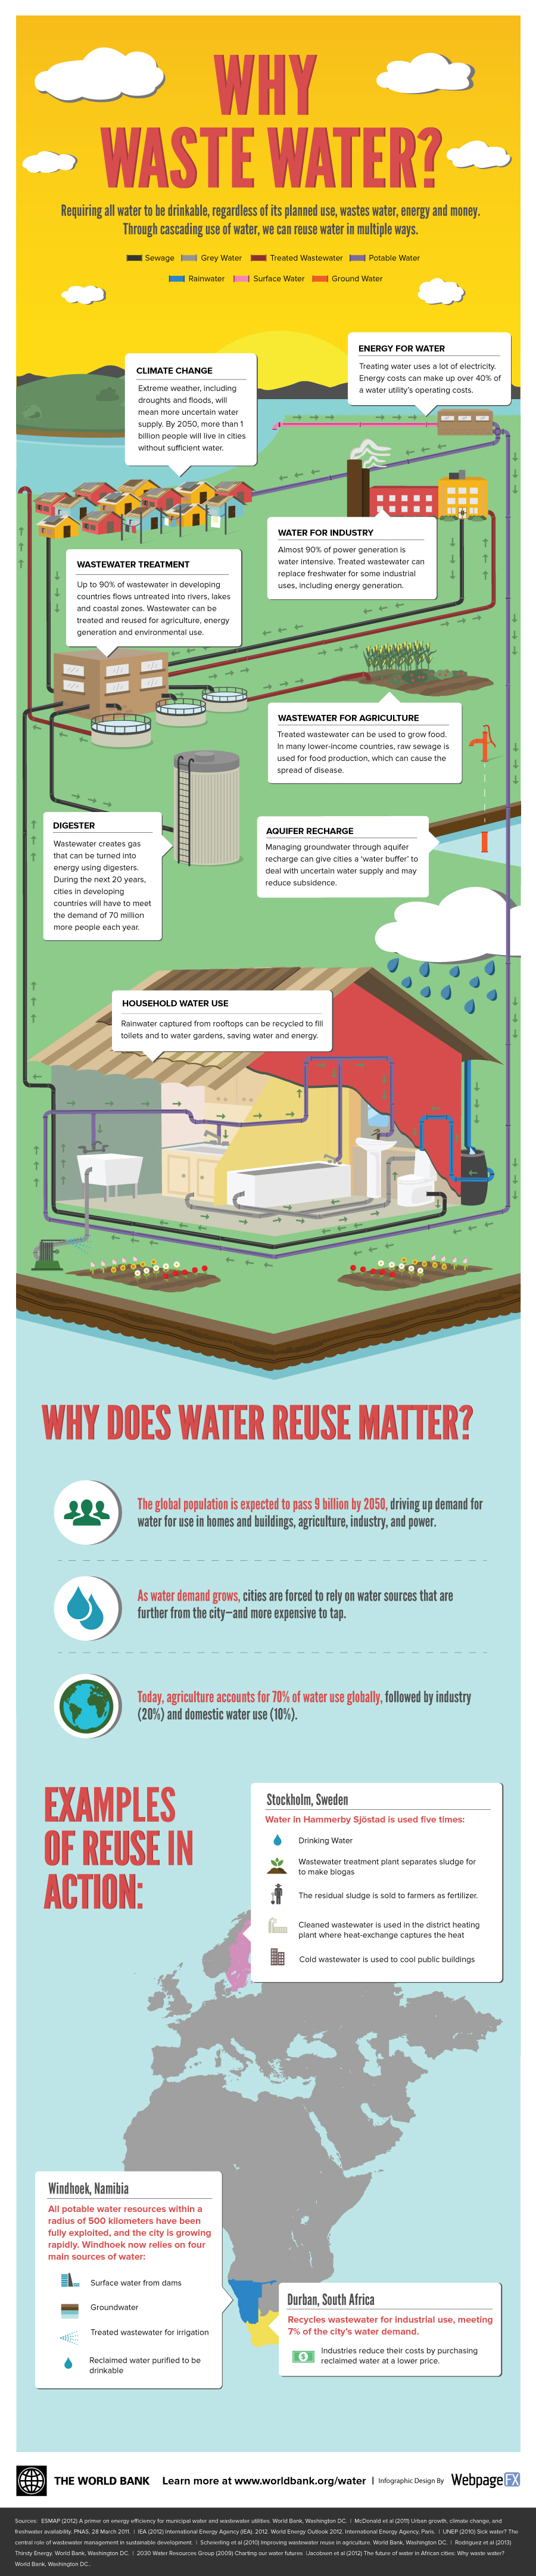 infographic-water-use-en-900x4324.jpg